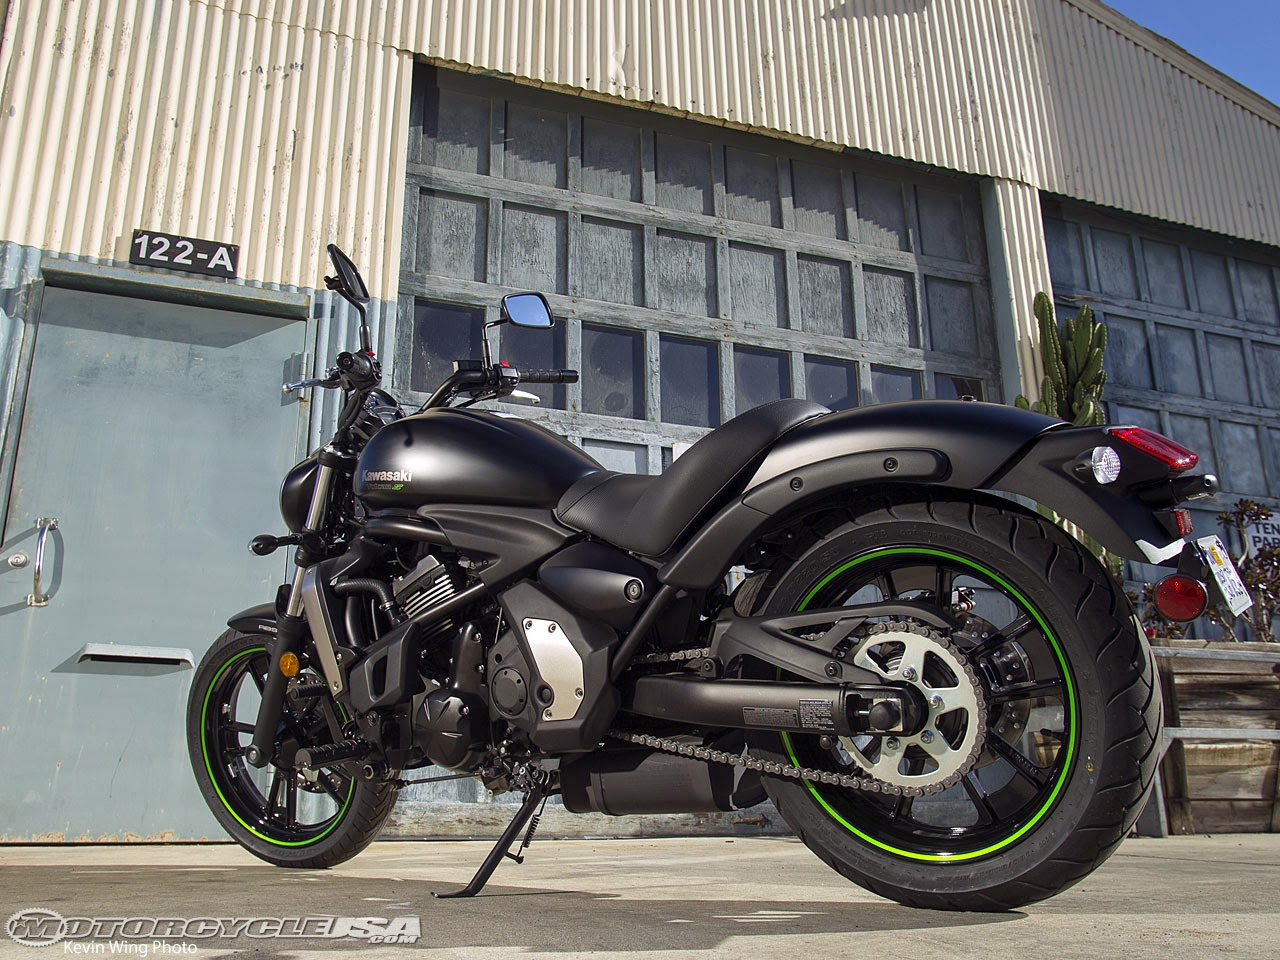 http://motorcyclesky.blogspot.com/110002/Motorcycle-Photo-Gallery-Photo/2015-Kawasaki-Vulcan-S-First-Ride.aspx